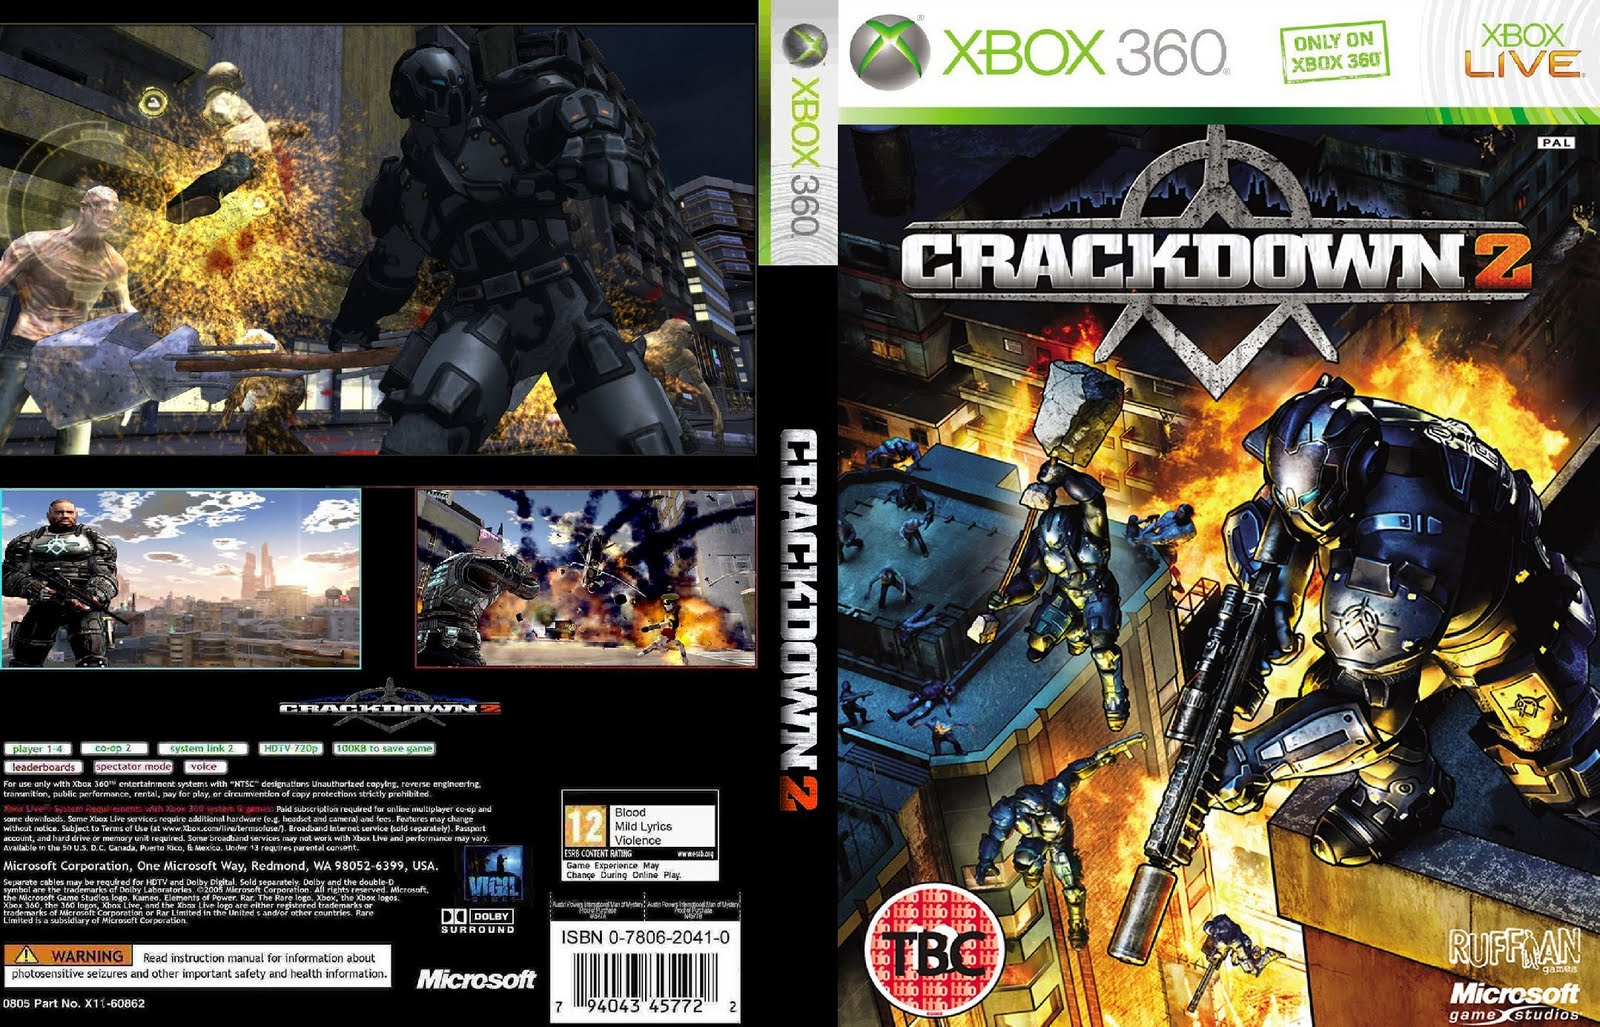 Xbox 360 Covers Crackdown 2